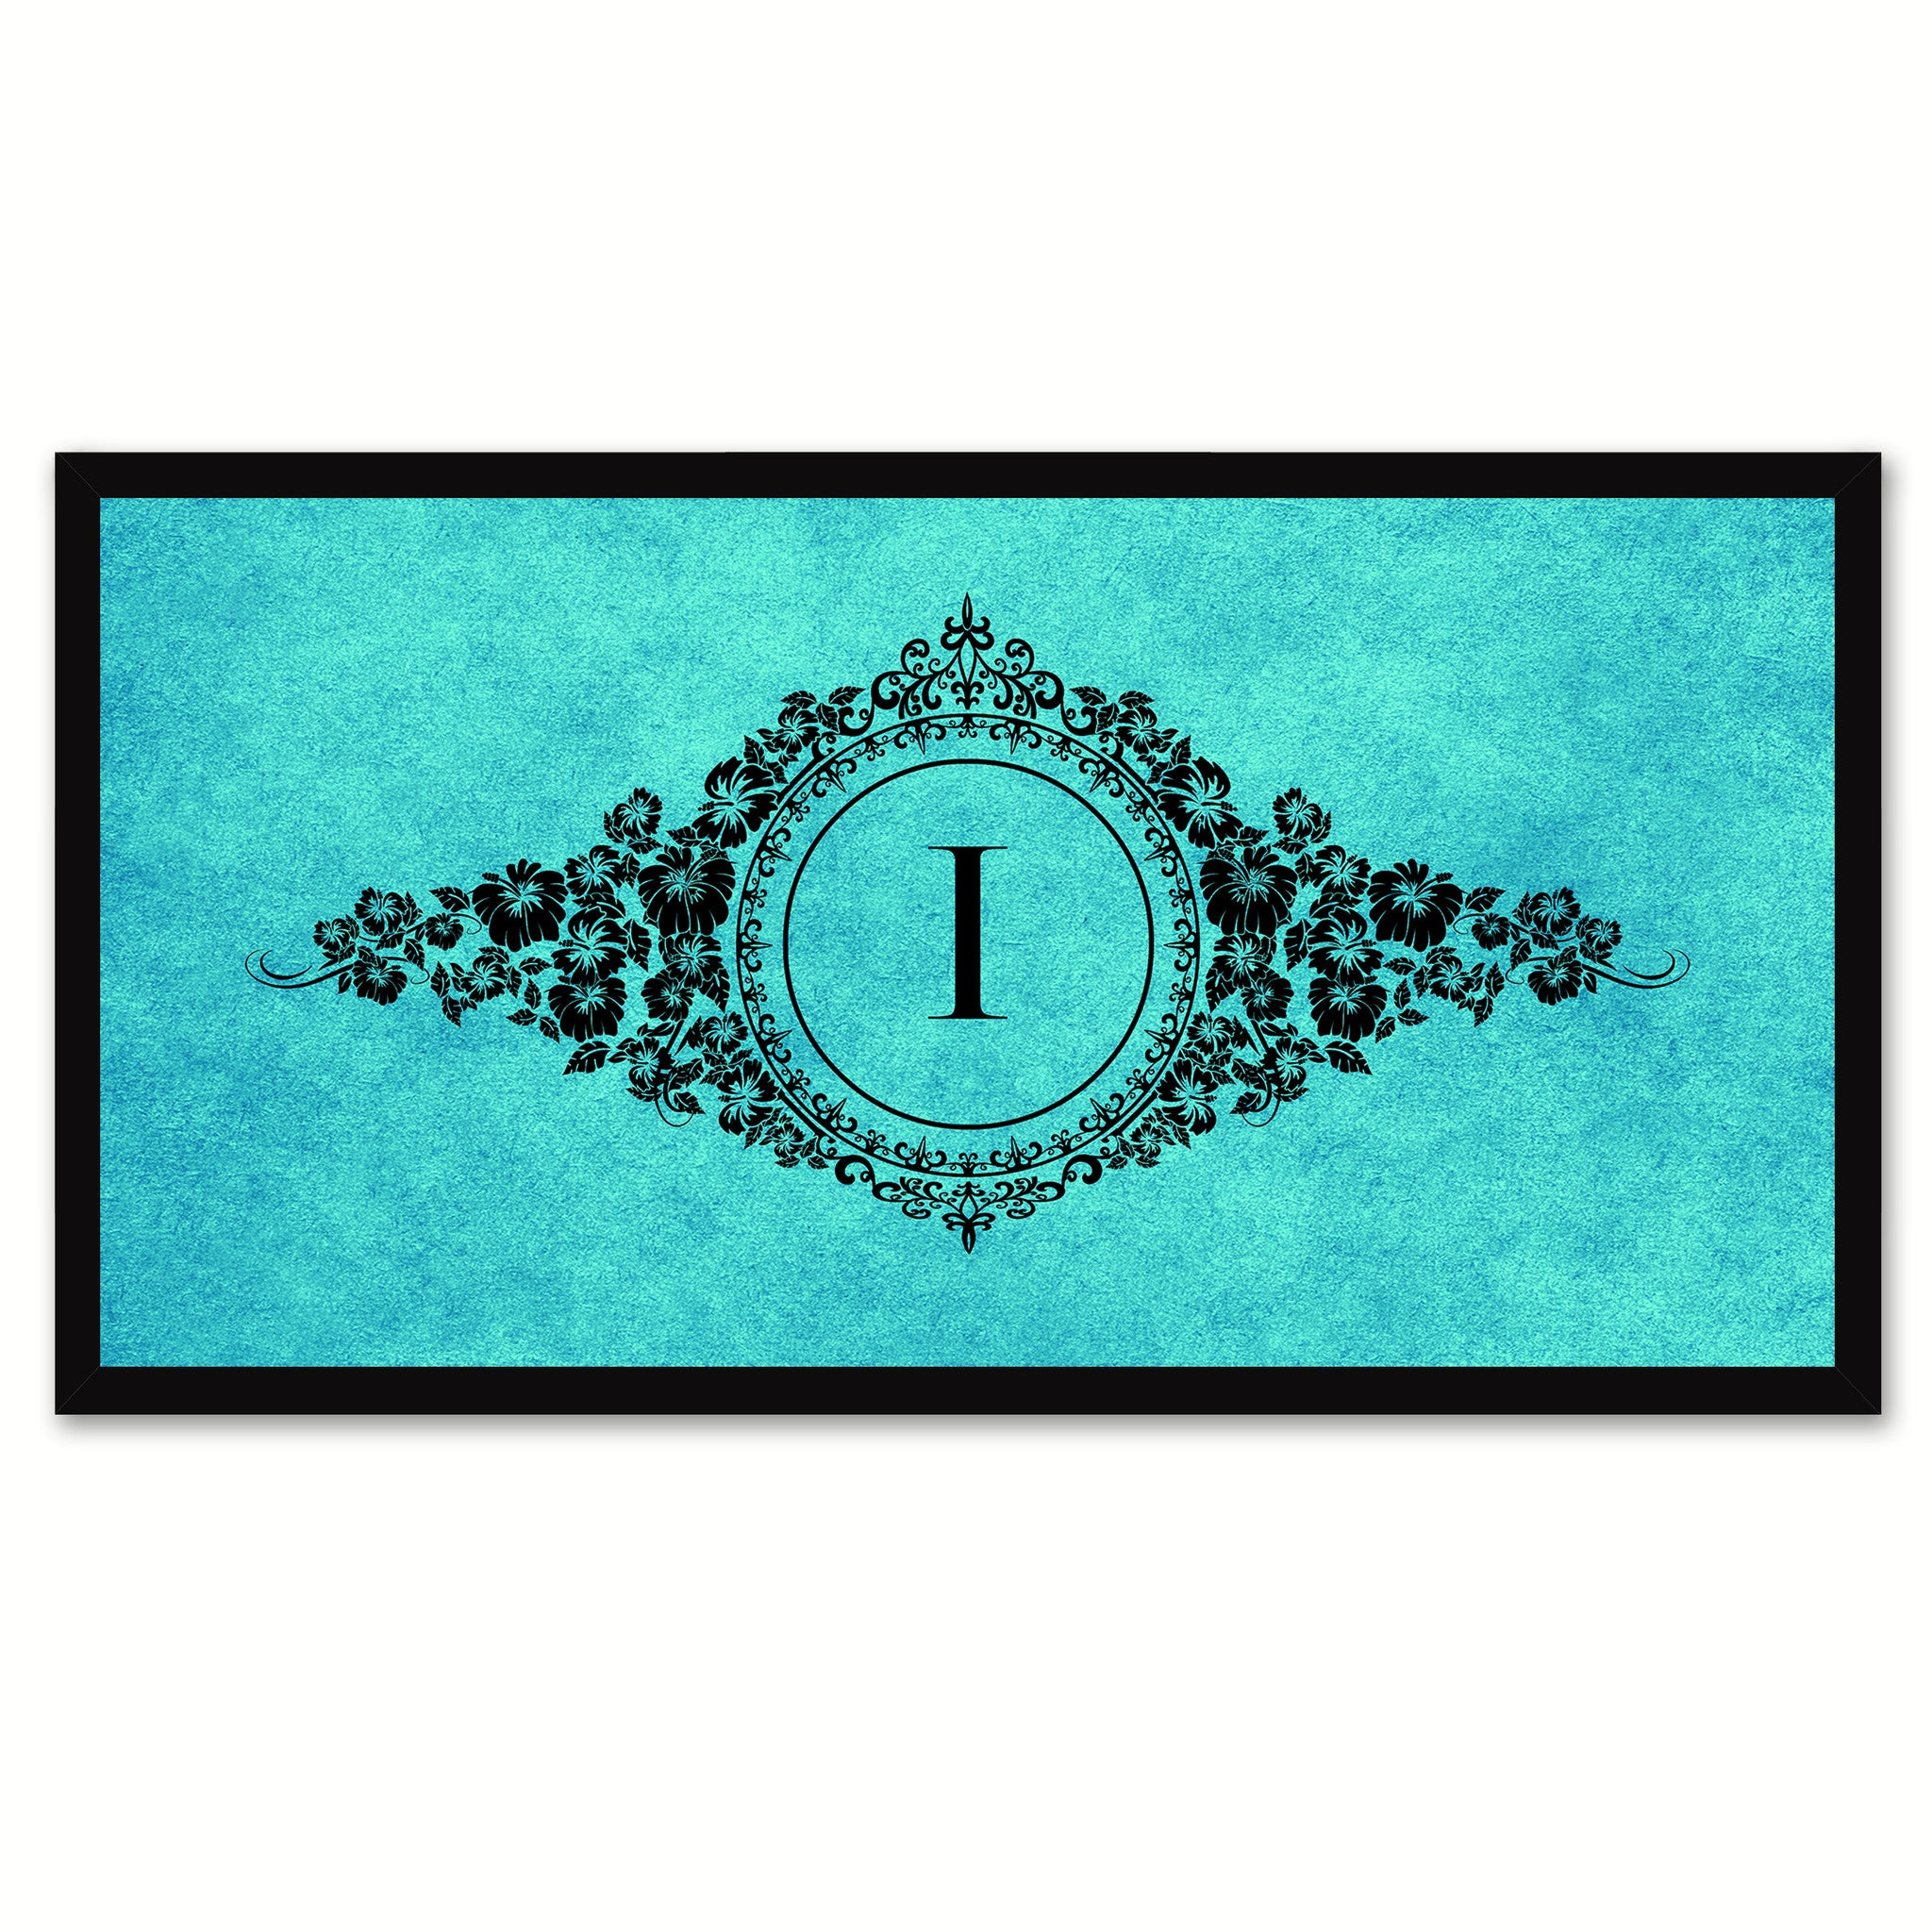 Alphabet Letter I Auqa Canvas Print, Black Custom Frame